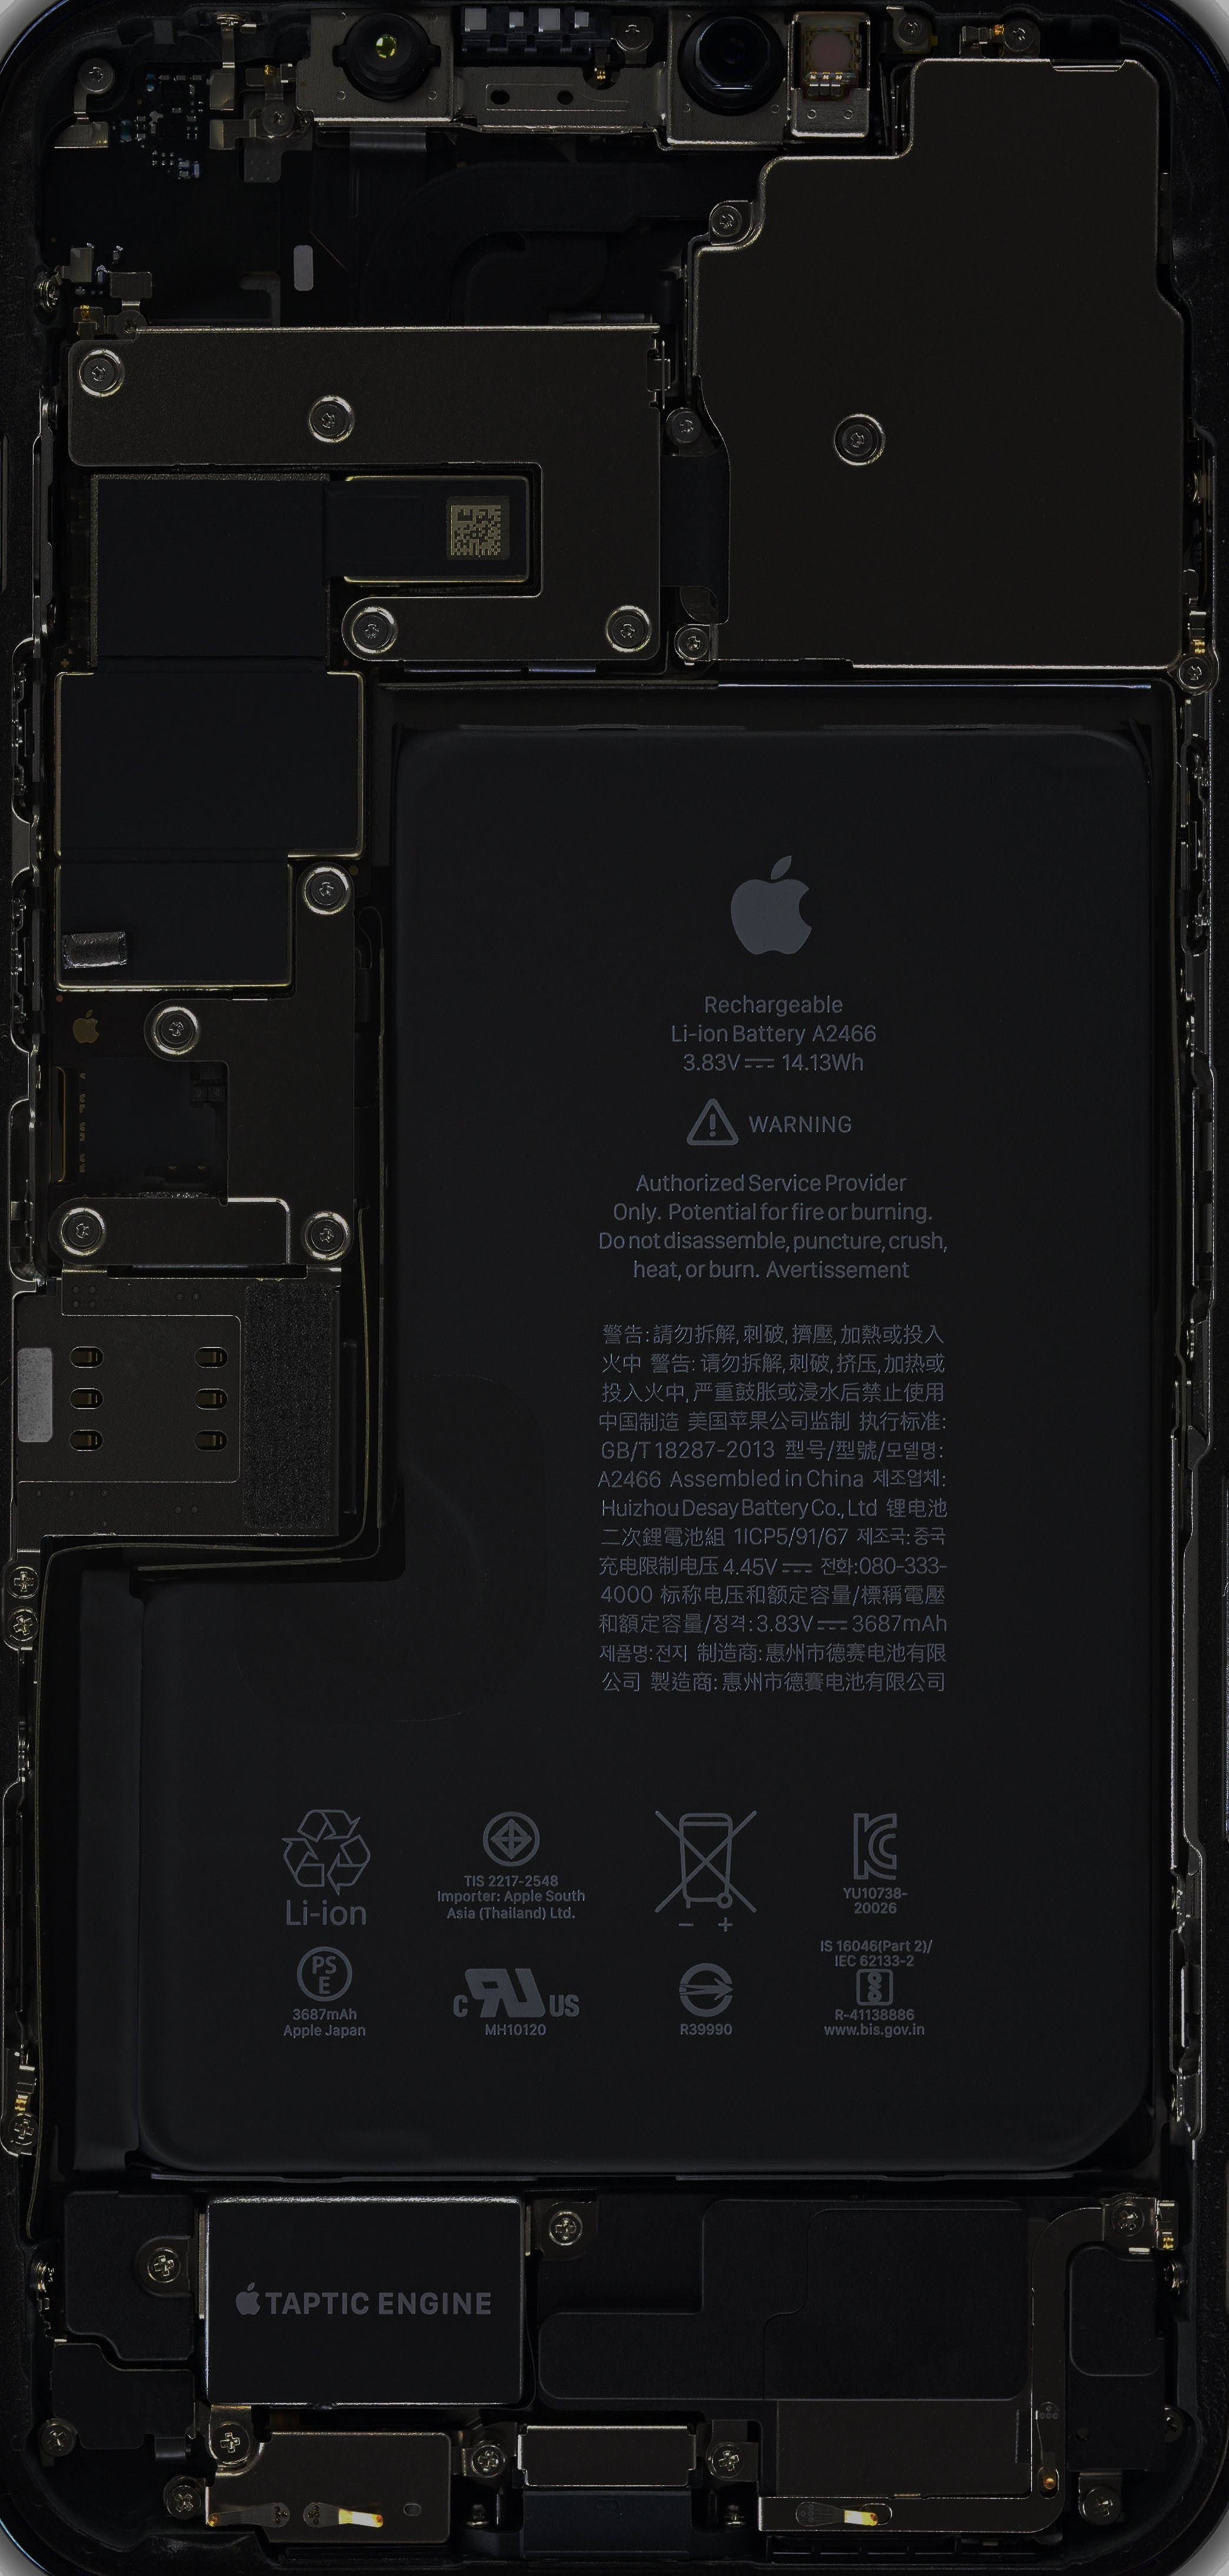 Teardown Wallpapers Iphone 12 Mini And Iphone 12 Pro Max Ifixit